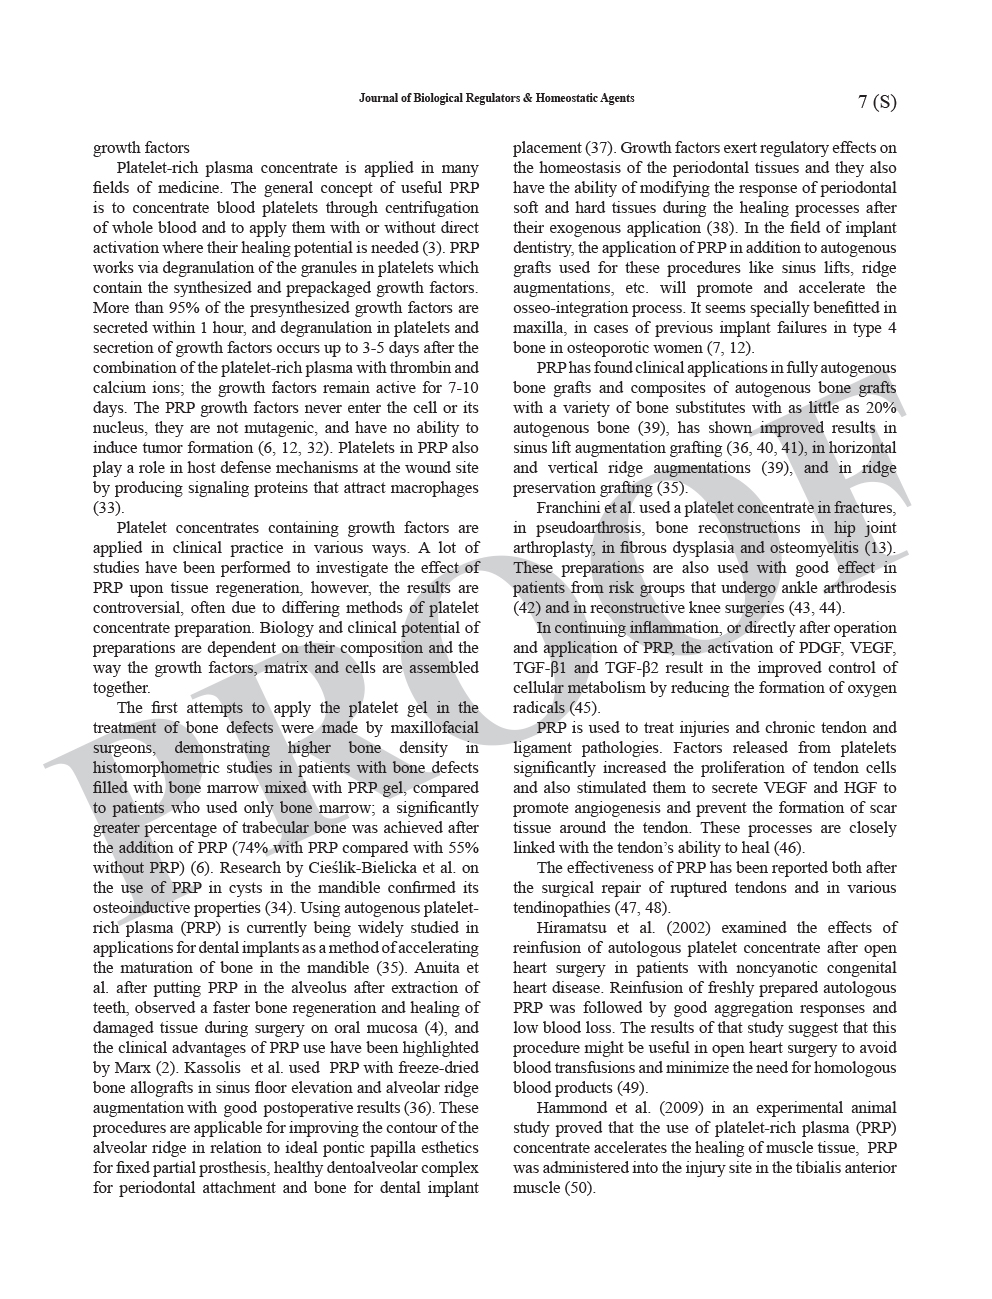 Growth Factor Content in PRP Applicability in Medicine 6 1